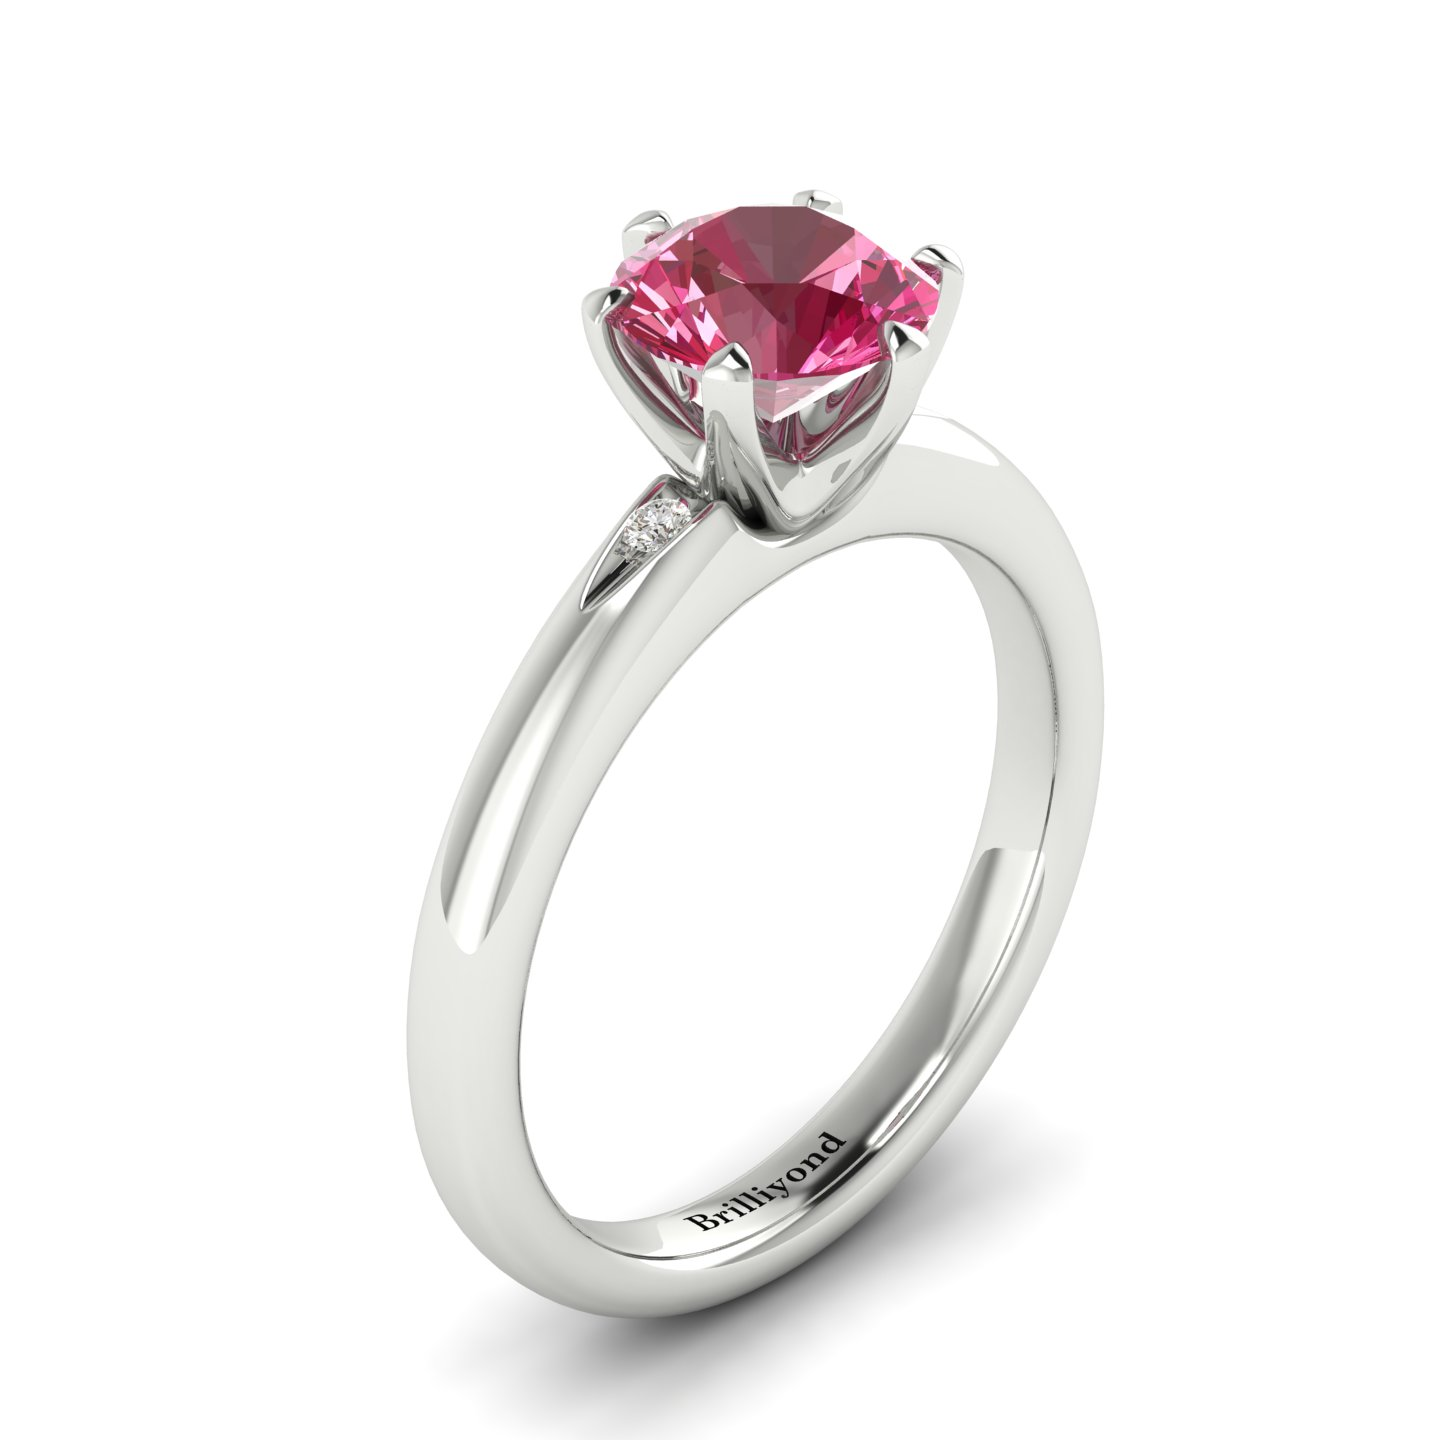 Rhodolite Garnet White Gold Solitaire Engagement Ring Byond_image1